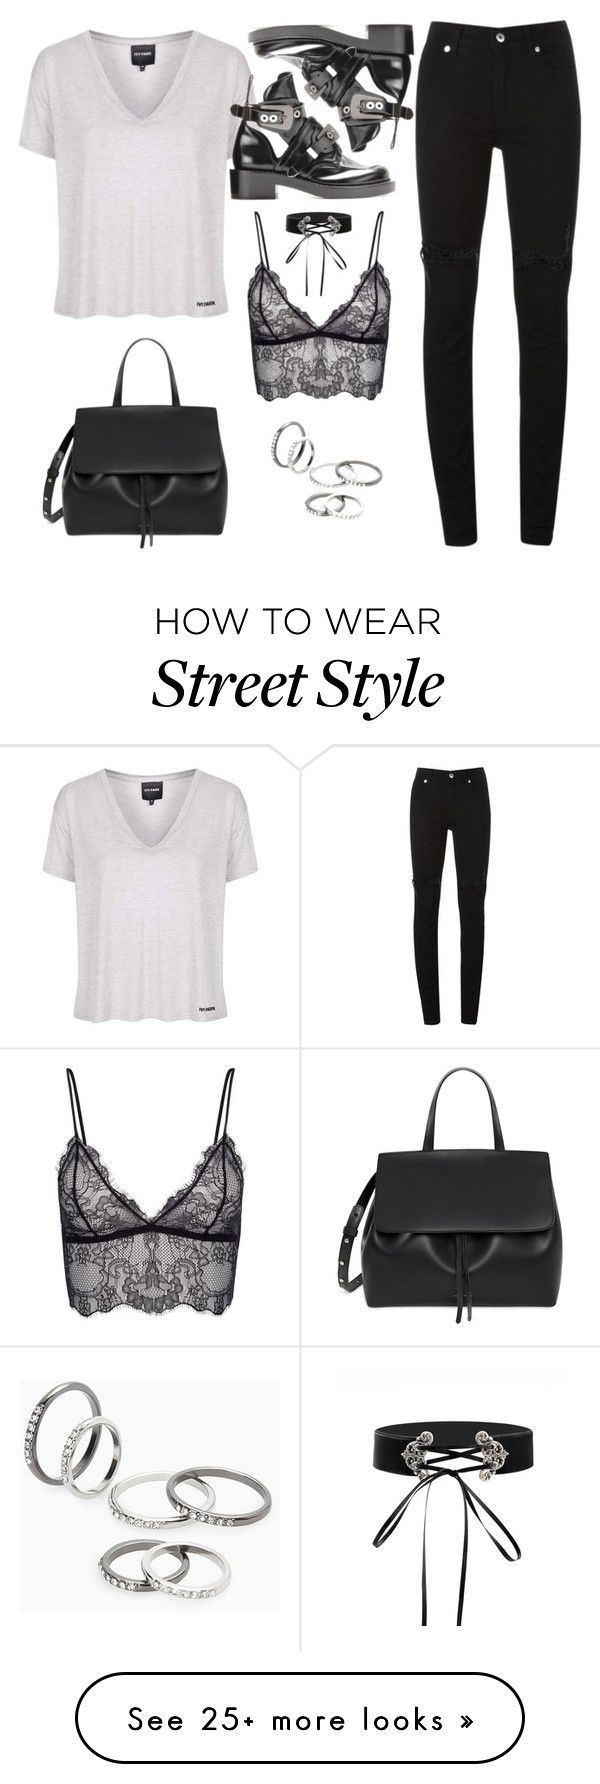 """Sans titre #2912"" by christina95styles on Polyvore featuring Topshop, Mansur Gavriel, McQ by Alexander McQueen, Anine Bing and MANGO"